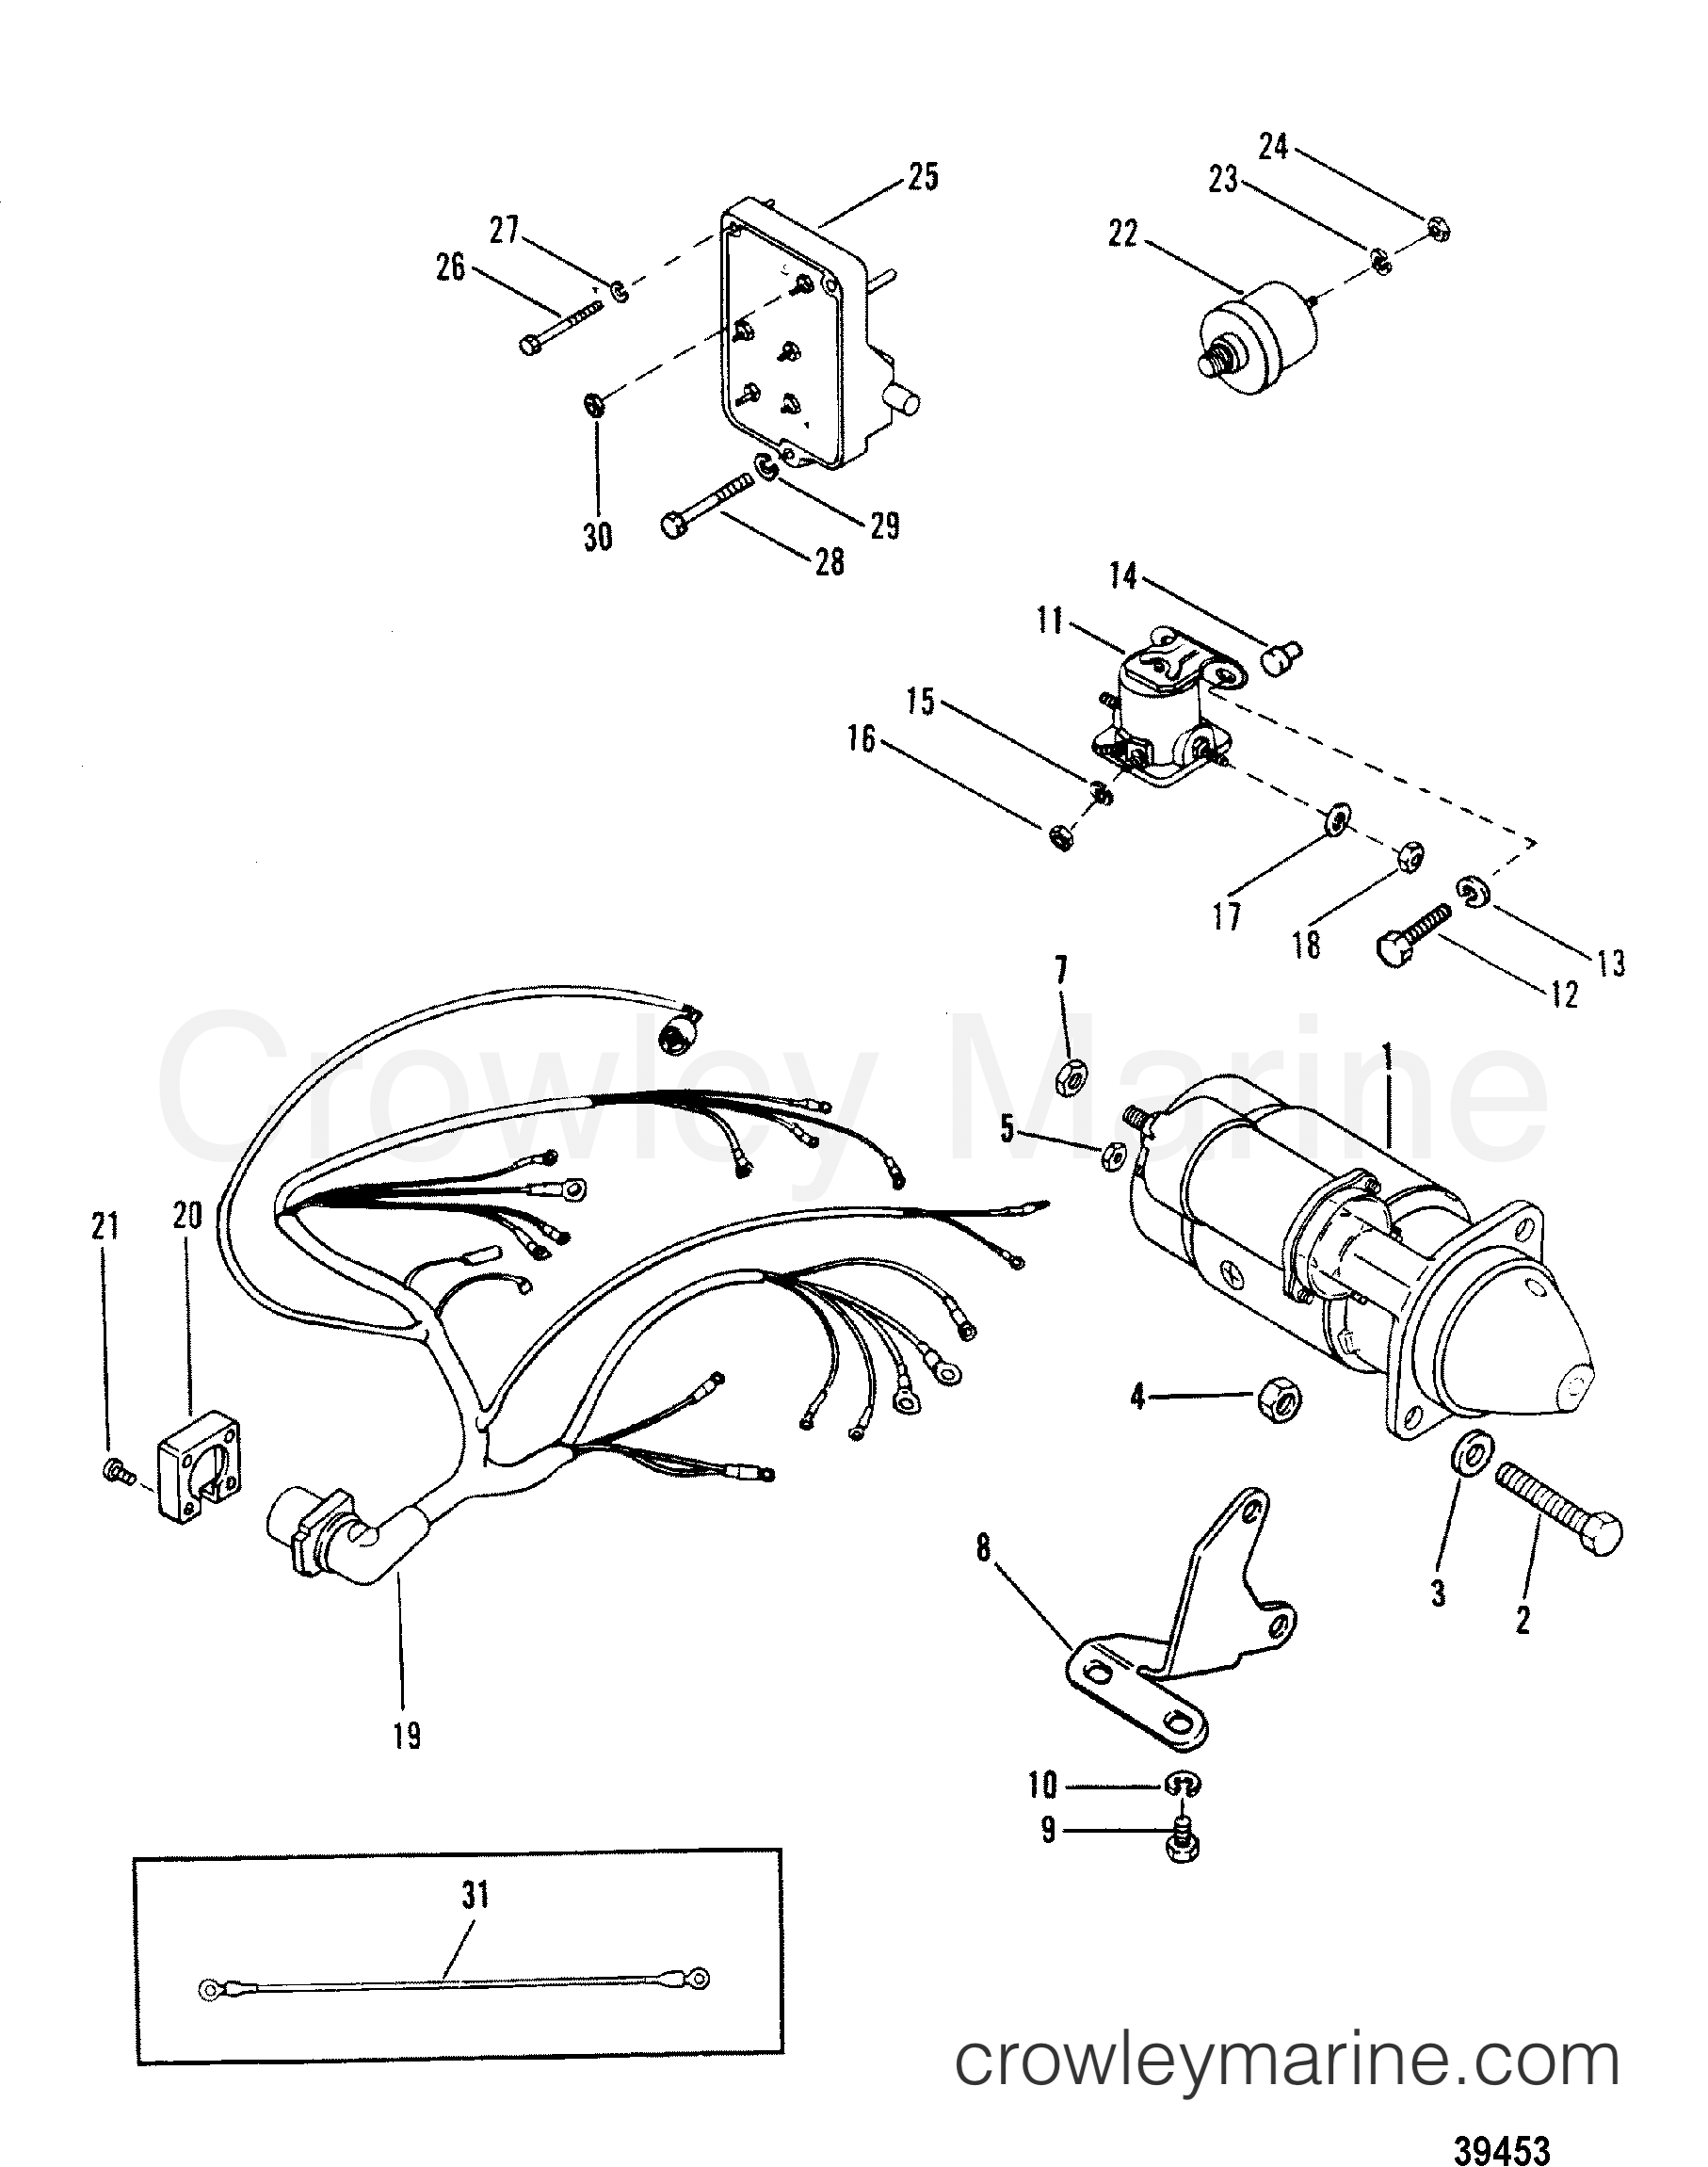 Wiring Diagram On Starter Solenoid Wiring Diagram 8 Mercruiser